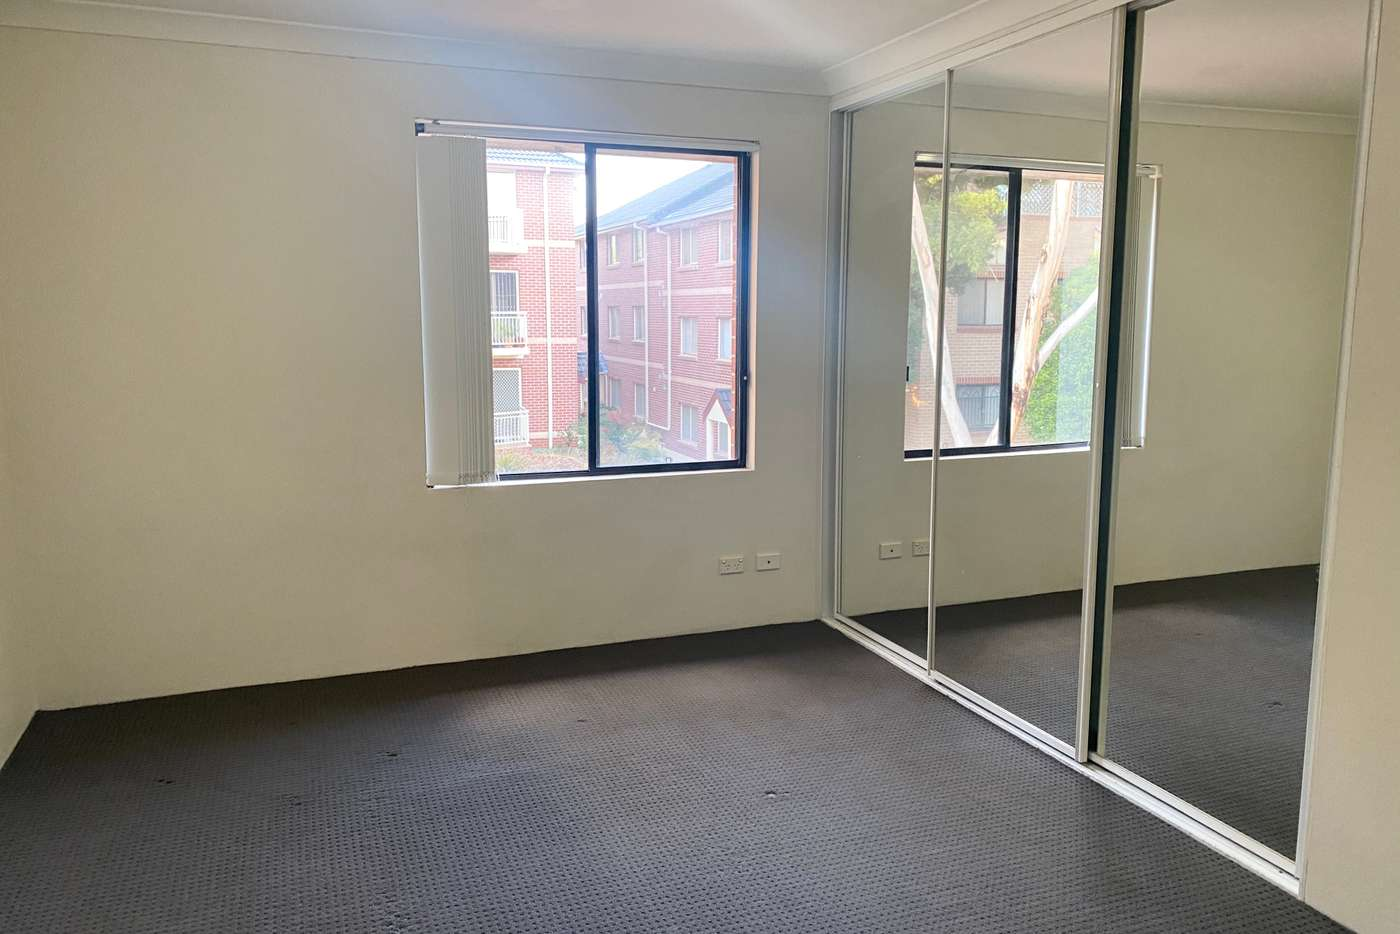 Sixth view of Homely apartment listing, 29/17-21 Webb Street, Riverwood NSW 2210